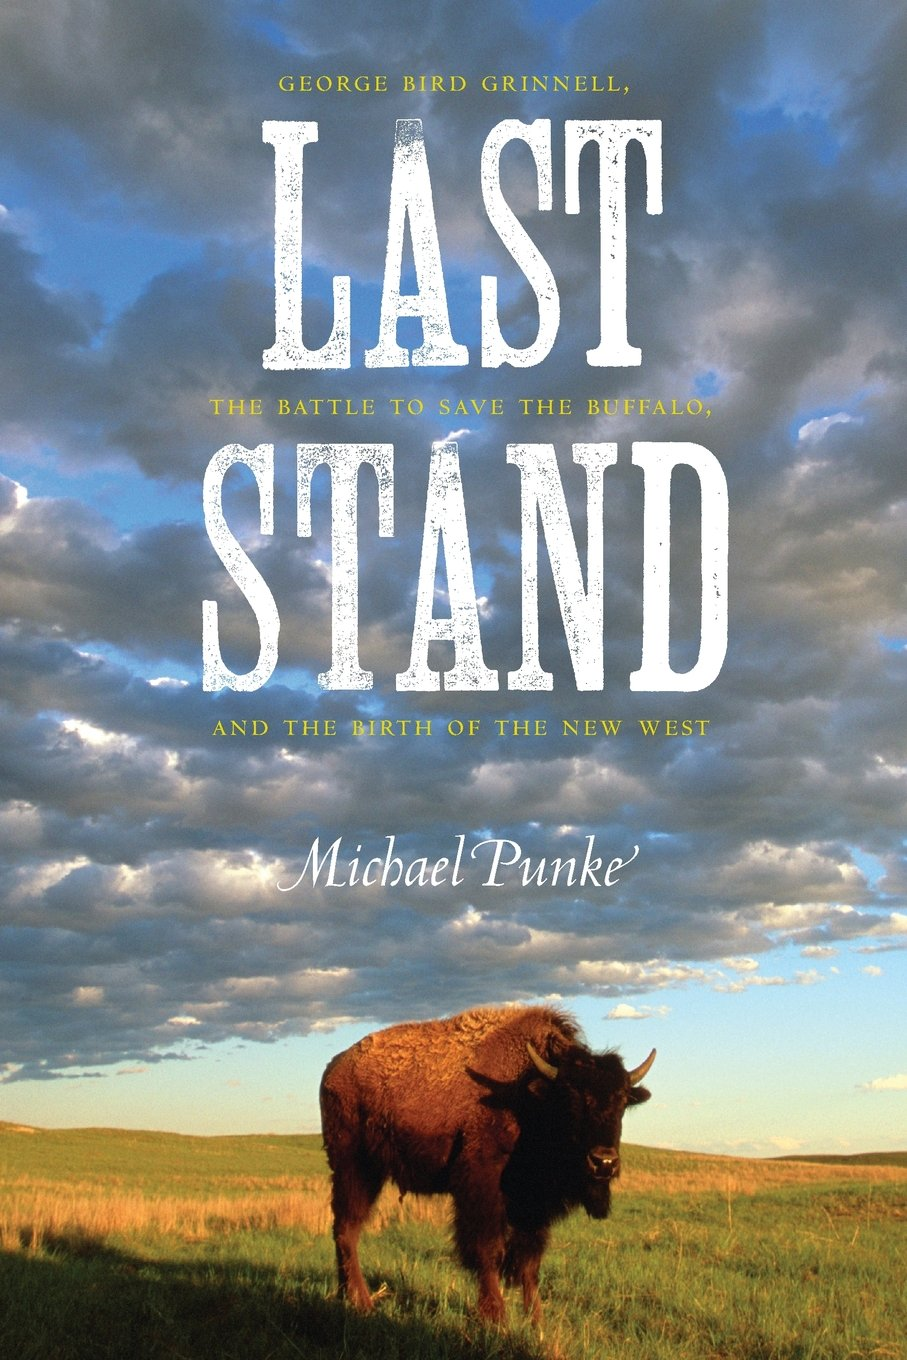 Last Stand: George Bird Grinnell, the Battle to Save the Buffalo, and the  Birth of the New West: Michael Punke: 9780803226807: Amazon.com: Books